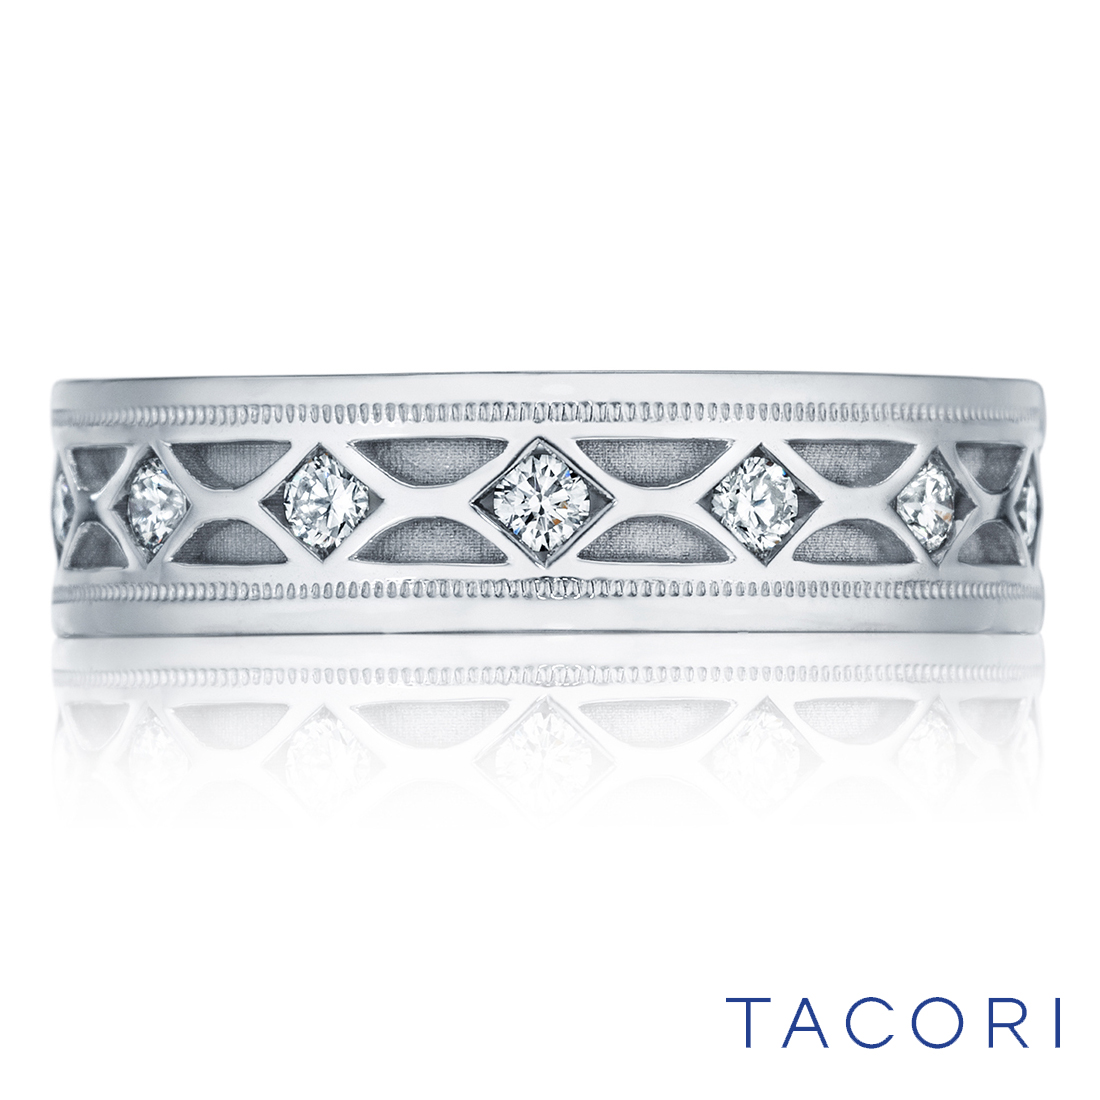 Tacori men's diamond band style 126-6d